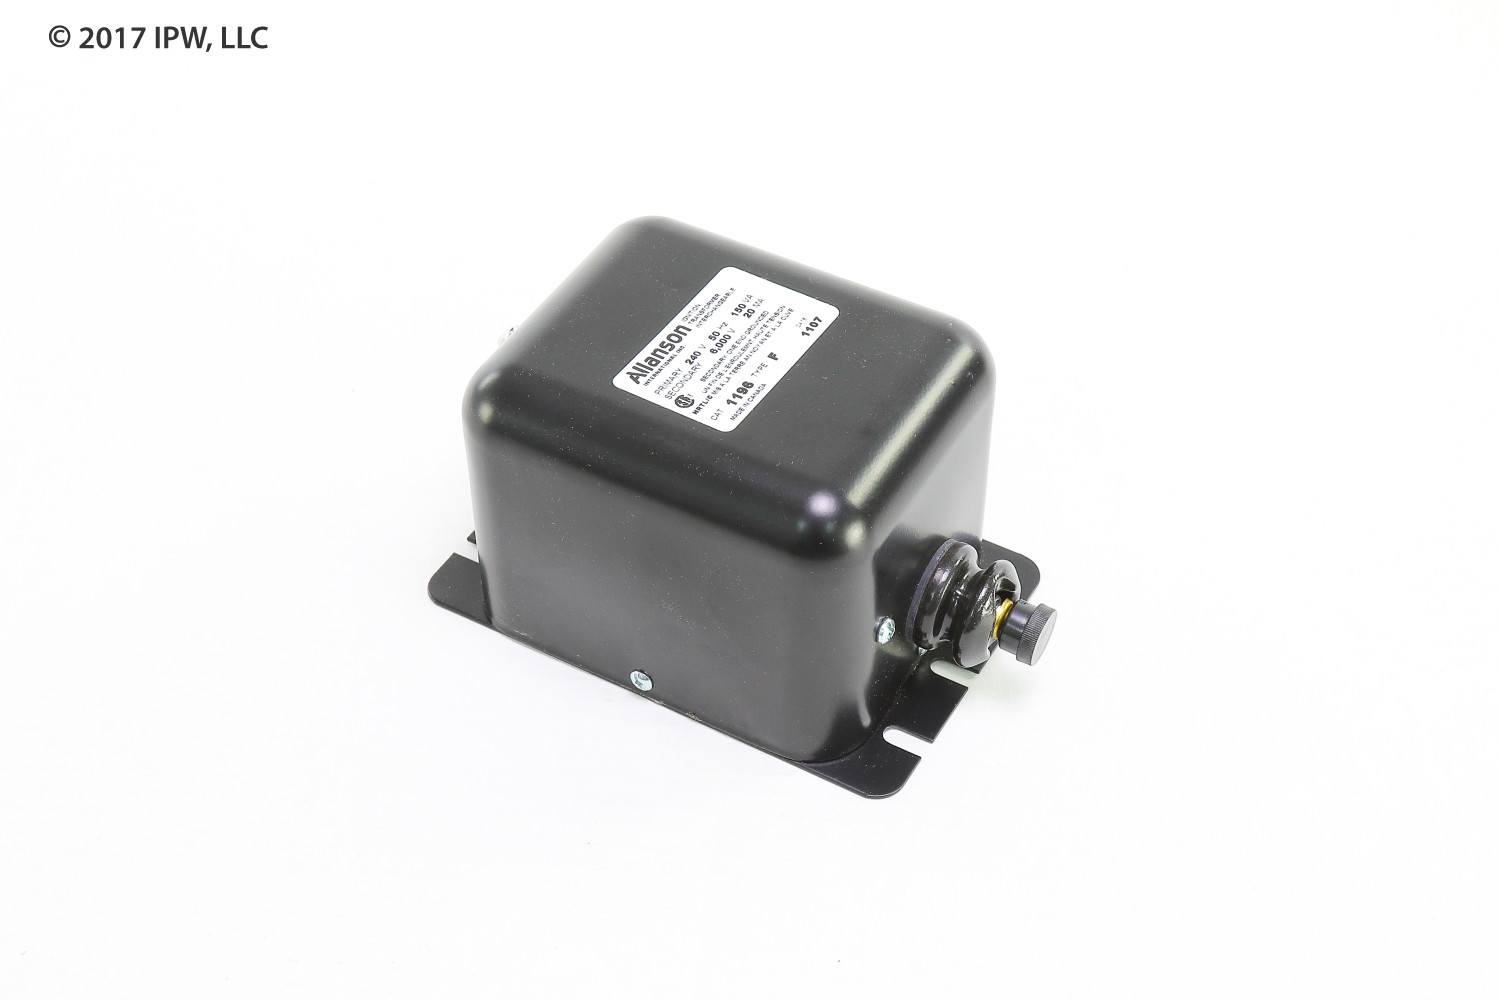 ALLANSON 1196-F Ignition Transformer for Gas Applications, 240V